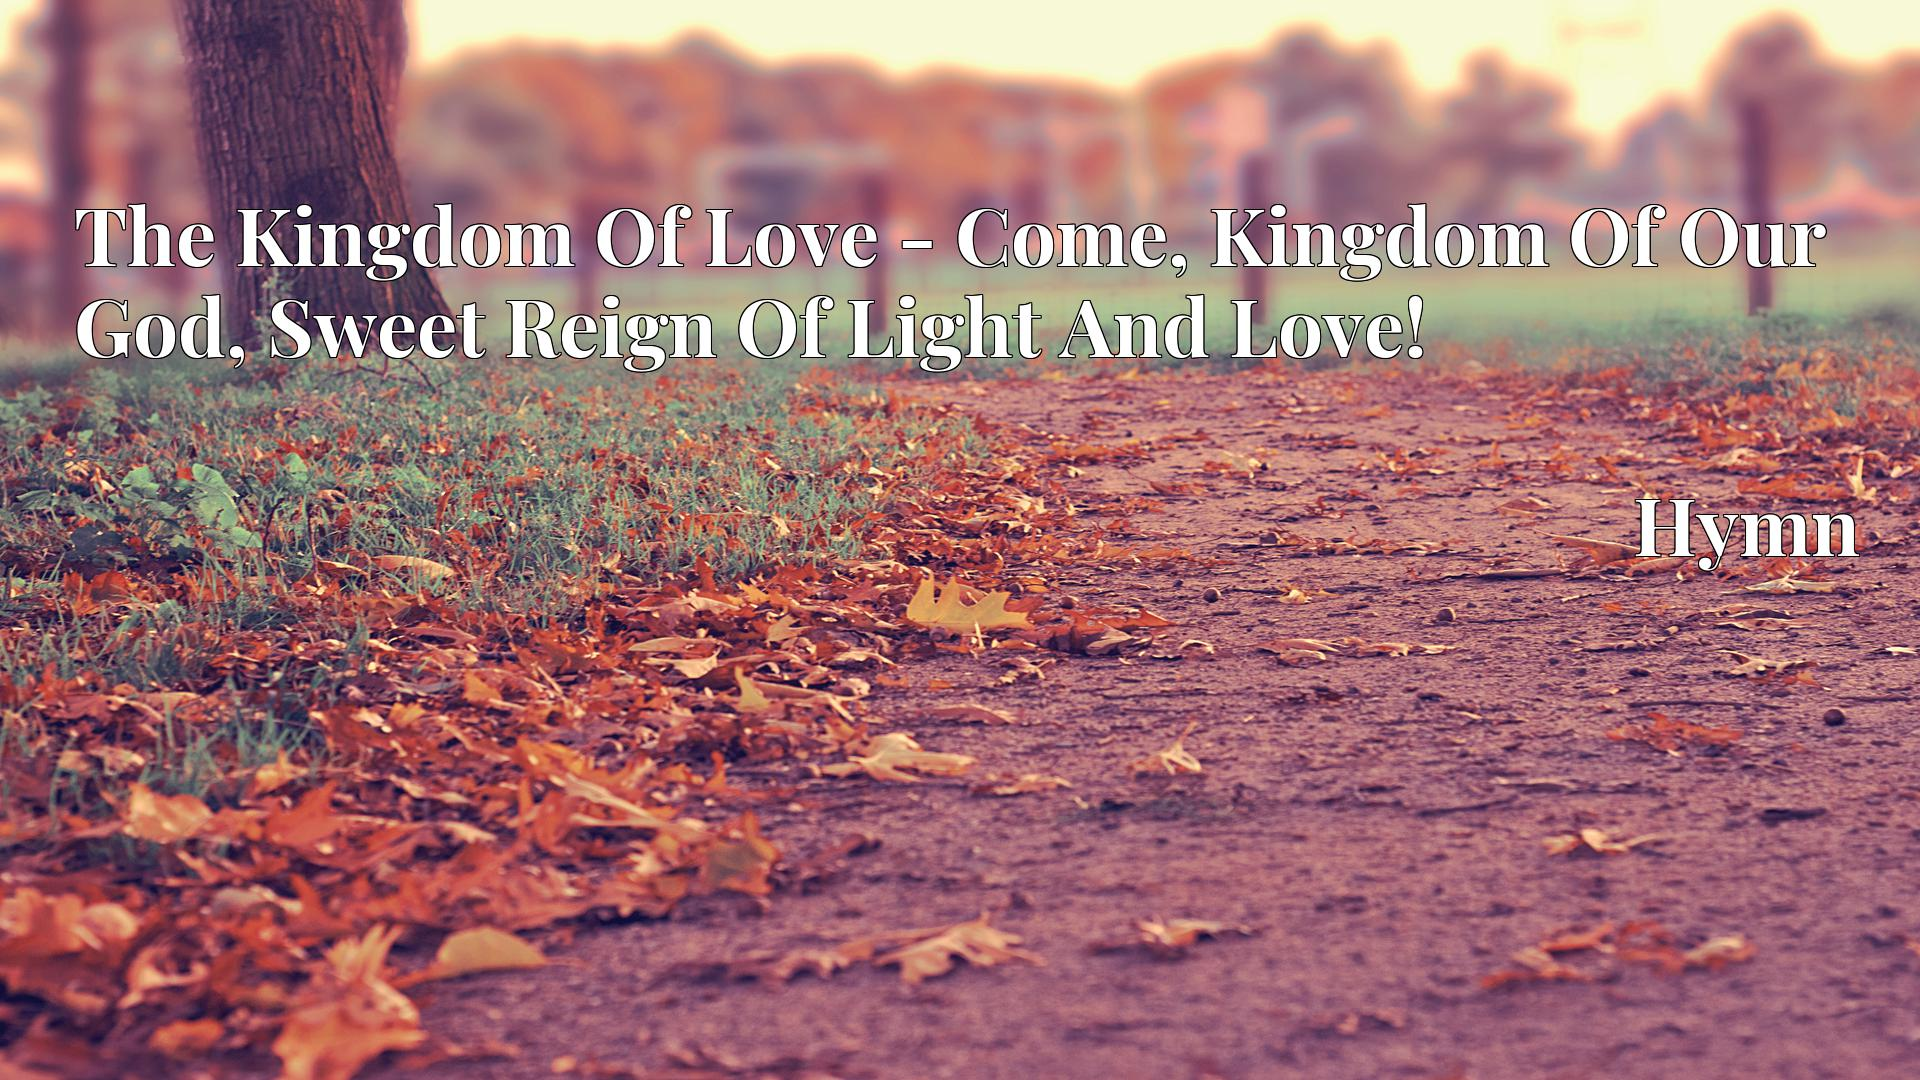 The Kingdom Of Love - Come, Kingdom Of Our God, Sweet Reign Of Light And Love! - Hymn